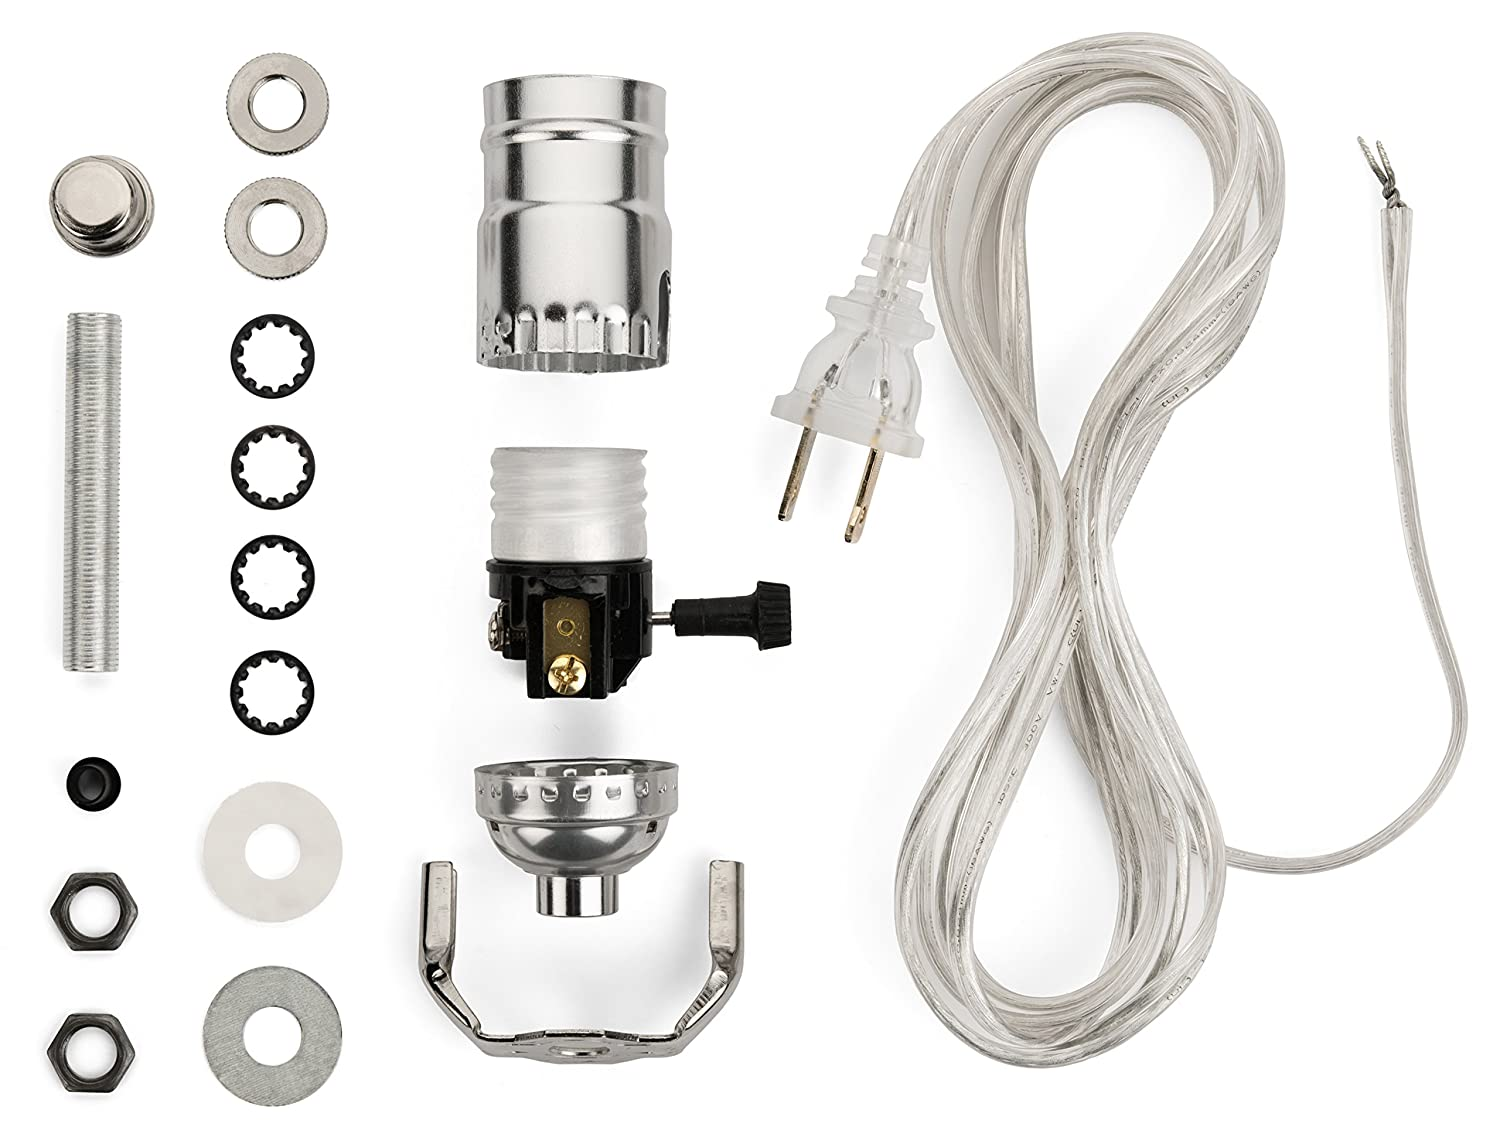 Lamp Wiring Kit Making Kits Allow You To Make Repair And Rewiring A Two Socket Repurpose Lamps Rewire Vintage Or Create Custom Light With Nickel